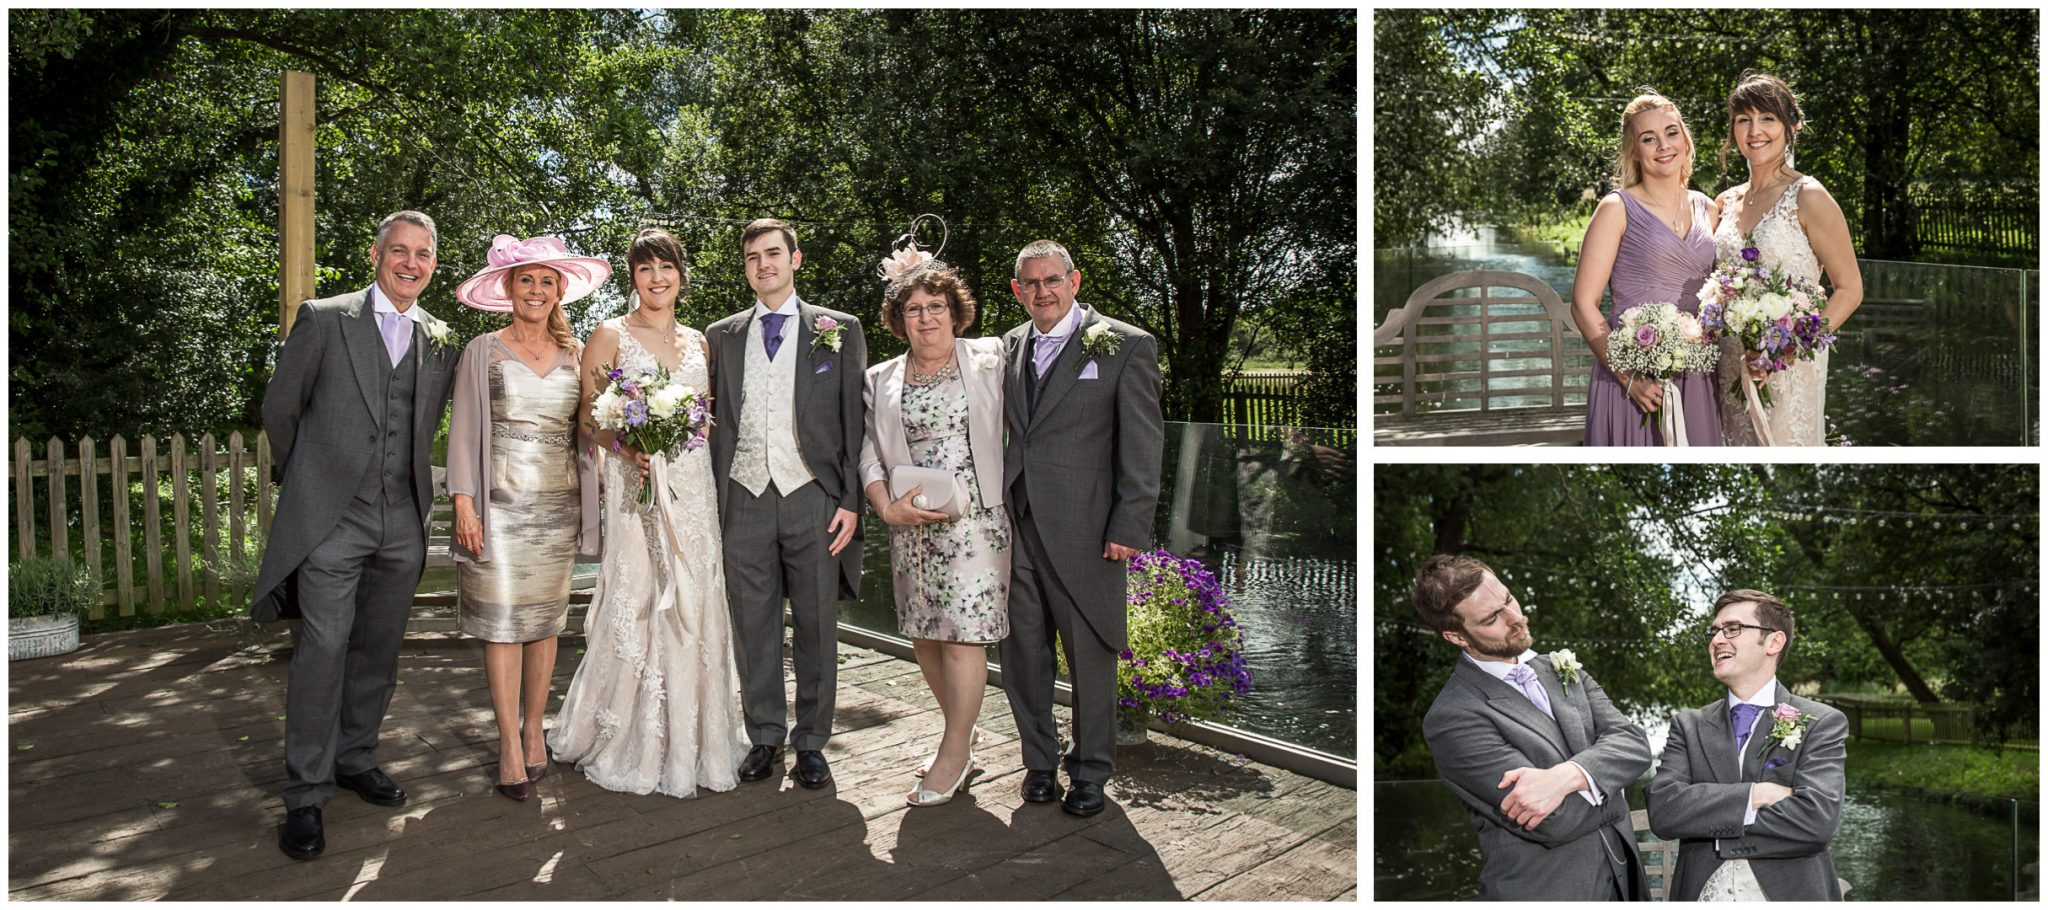 Sopley Mill wedding photography group photos on the terrace